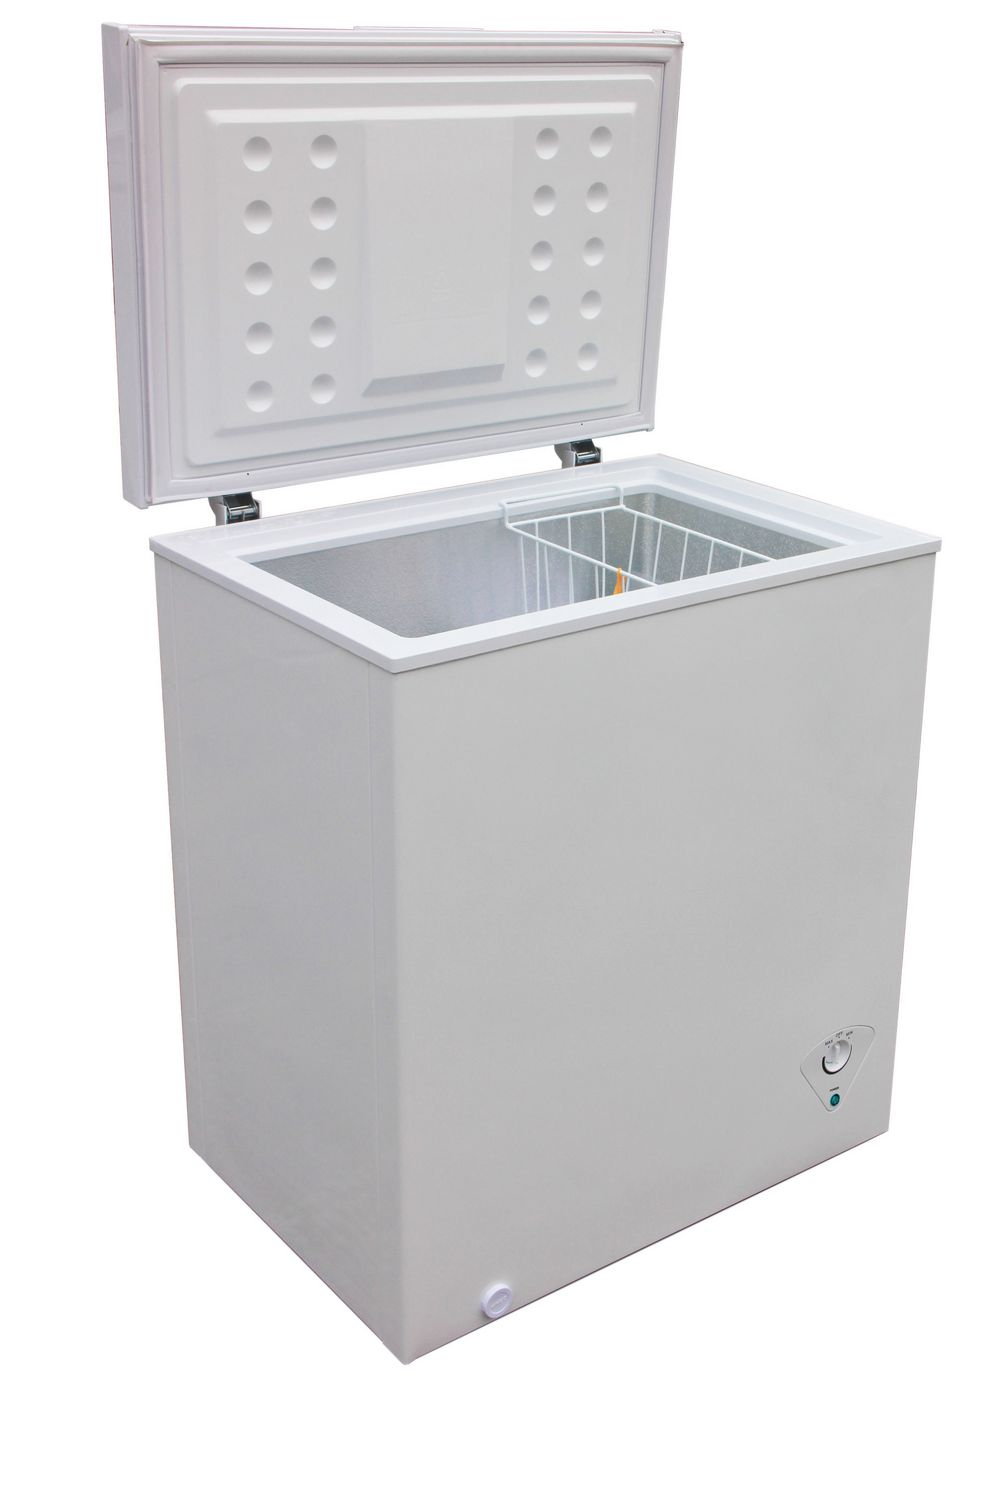 Arctic King 5.0 cu ft Chest Freezer | Walmart Canada